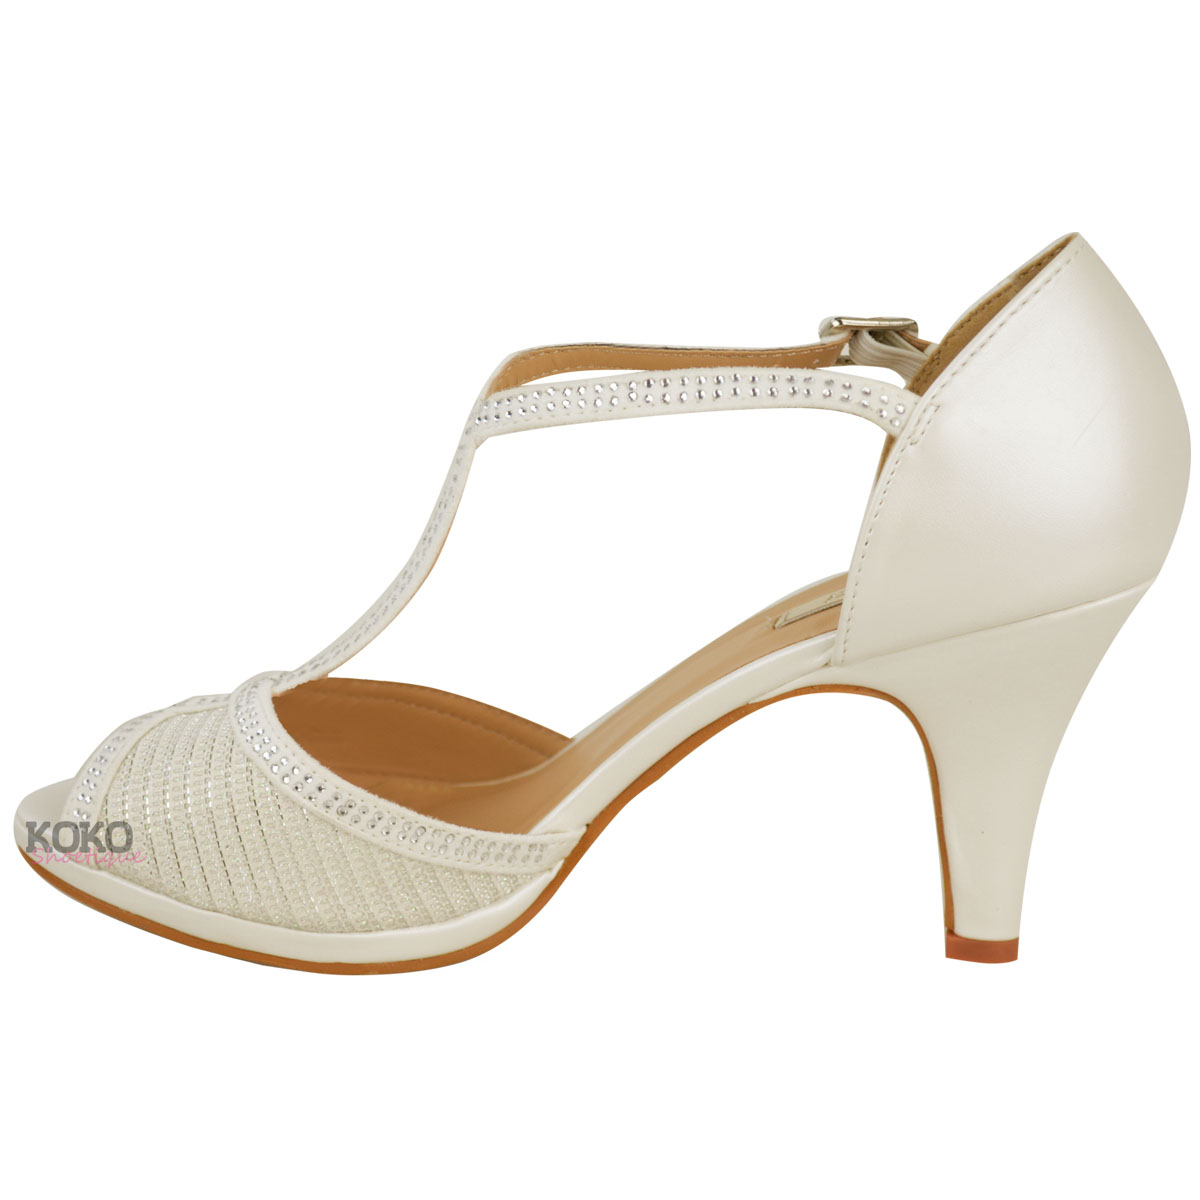 Womens Party Shoes Sale: Save Up to 75% Off! Shop universities2017.ml's huge selection of Party Shoes for Women - Over styles available. FREE Shipping & Exchanges, and a % price guarantee!